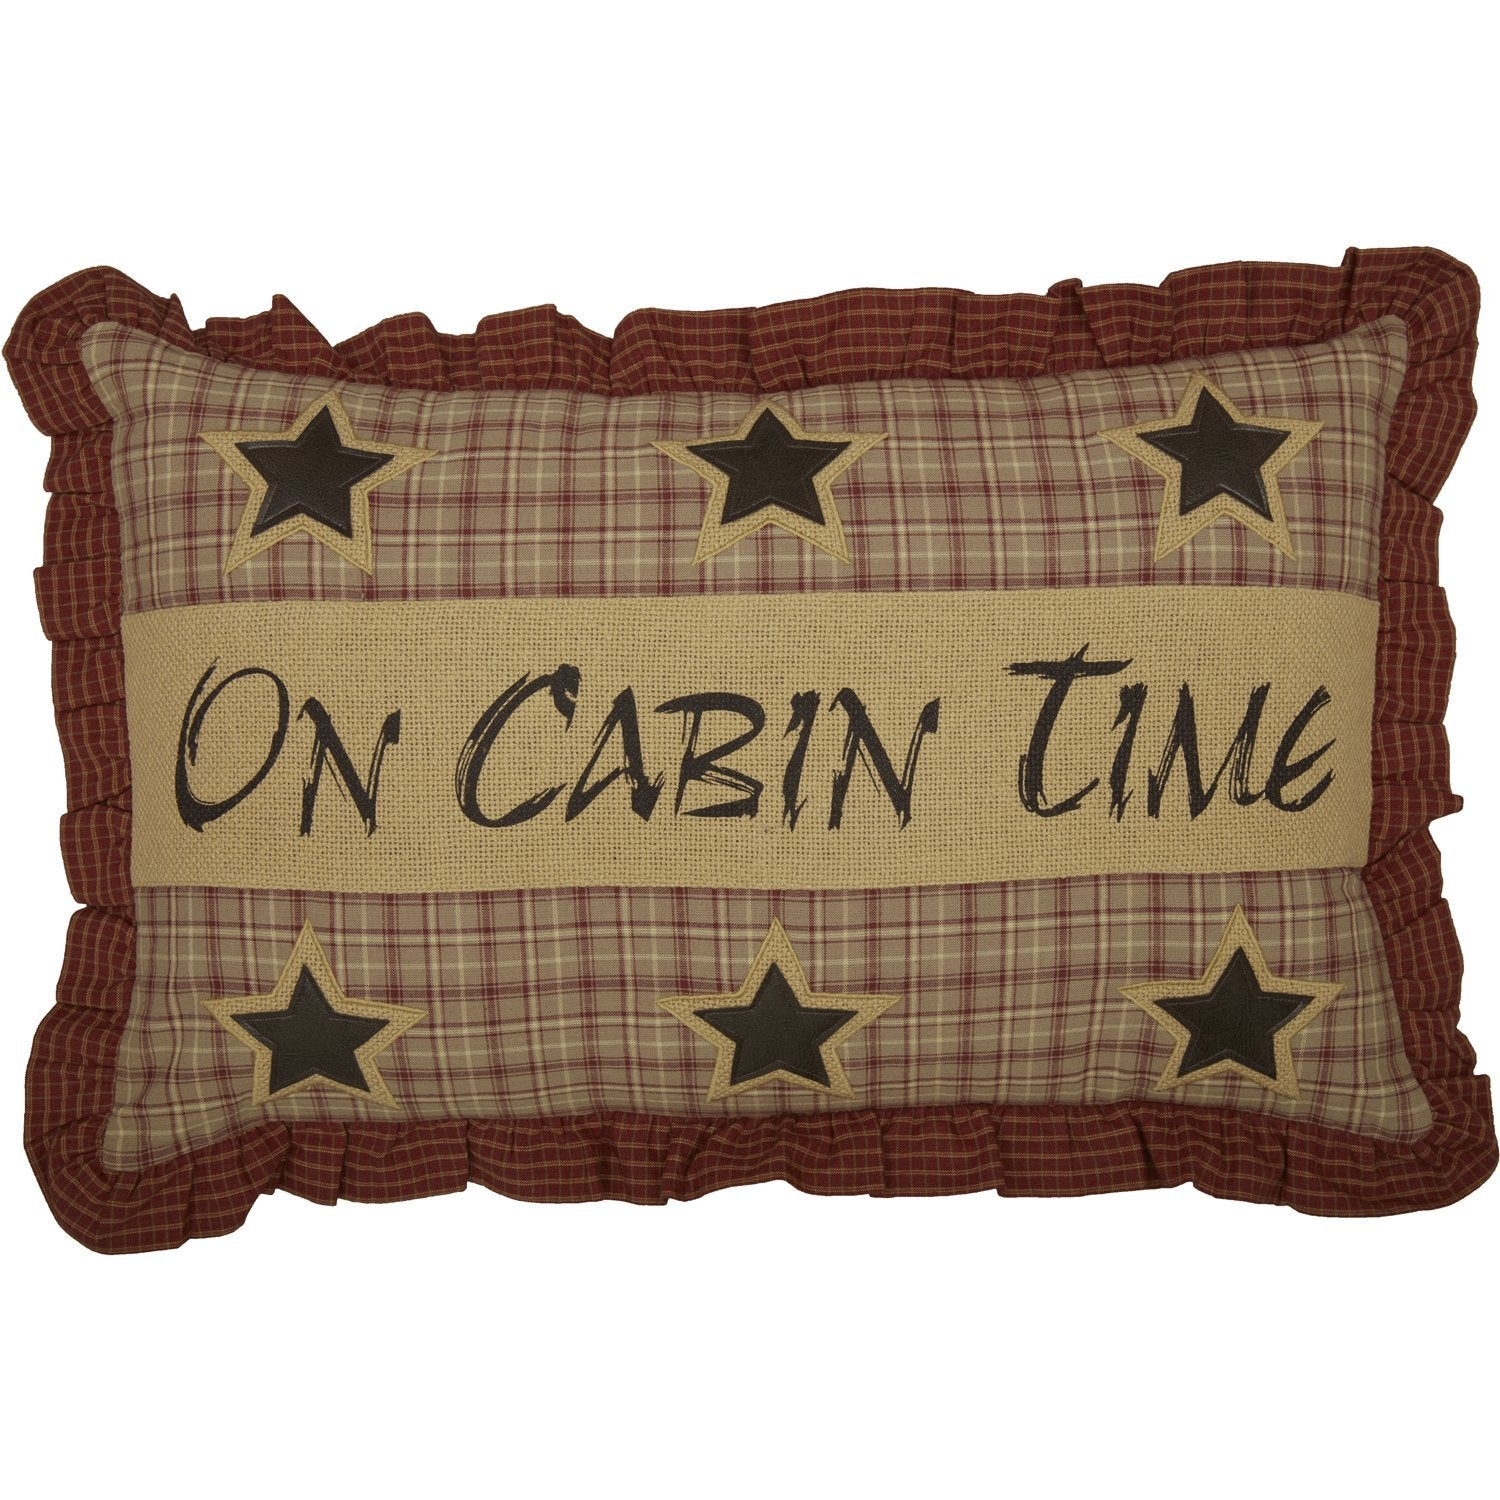 Dawson Star On Cabin Time Pillow Cover.